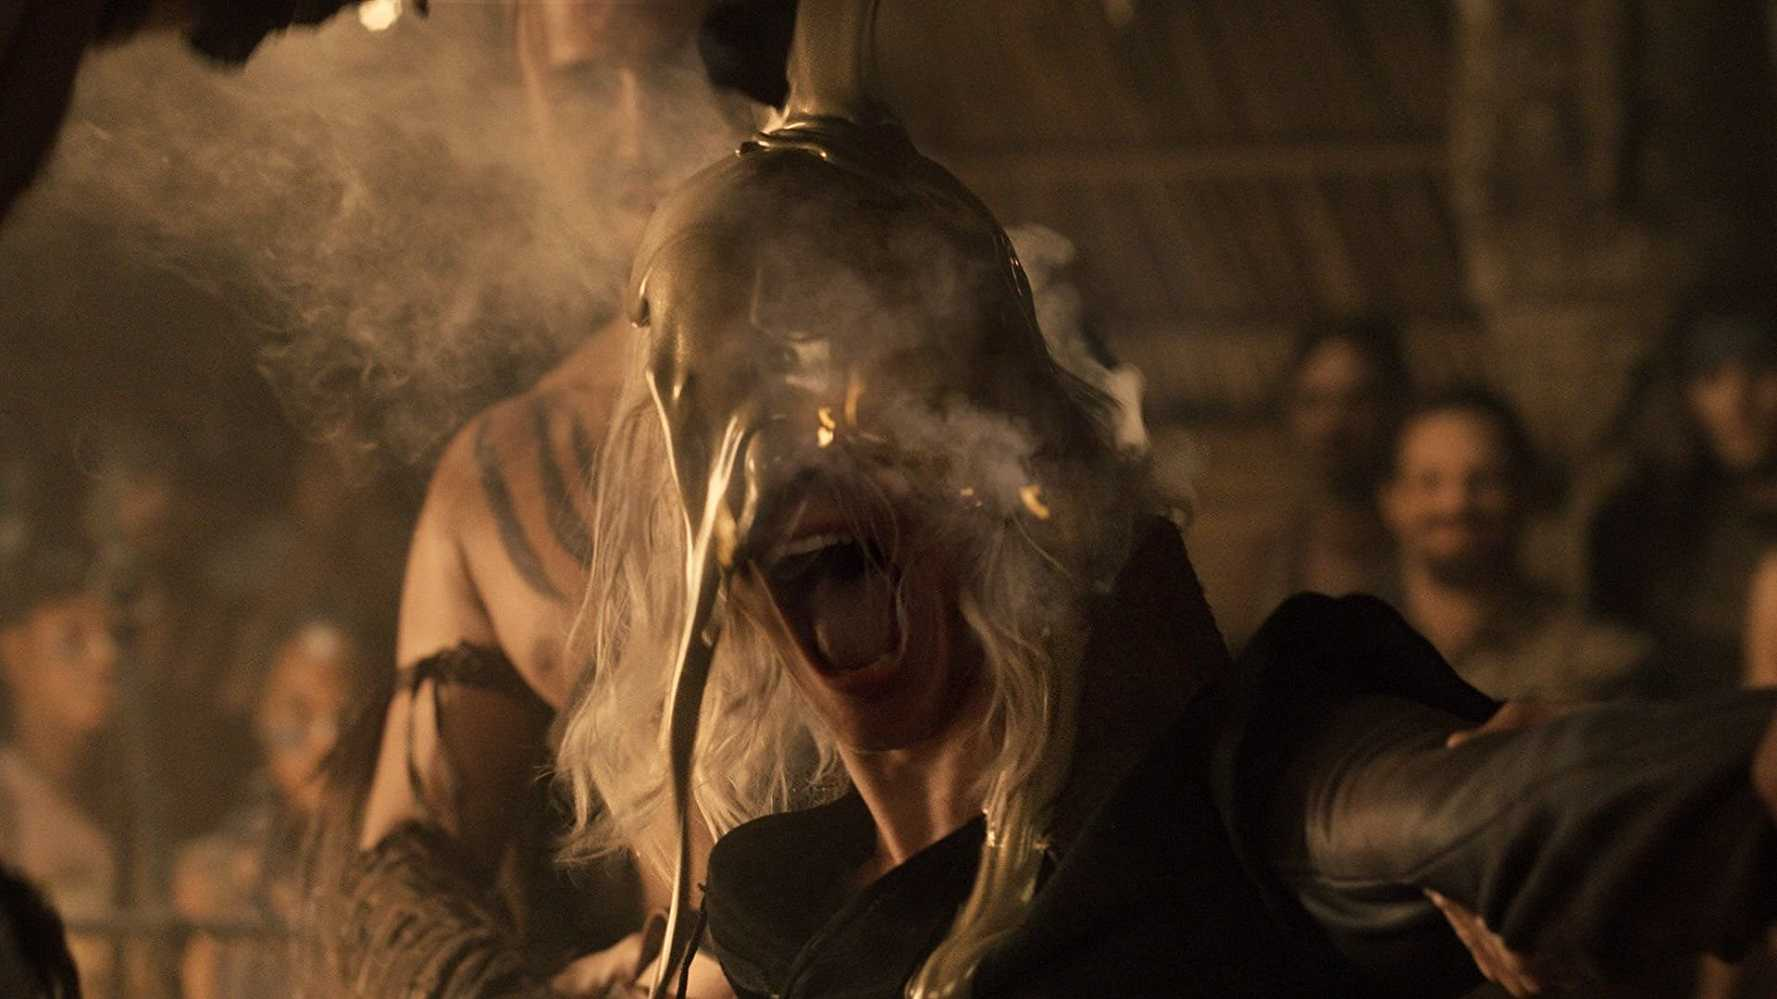 Viserys getting the crown he deserves in 'Game of Thrones'. (Source: IMDB)